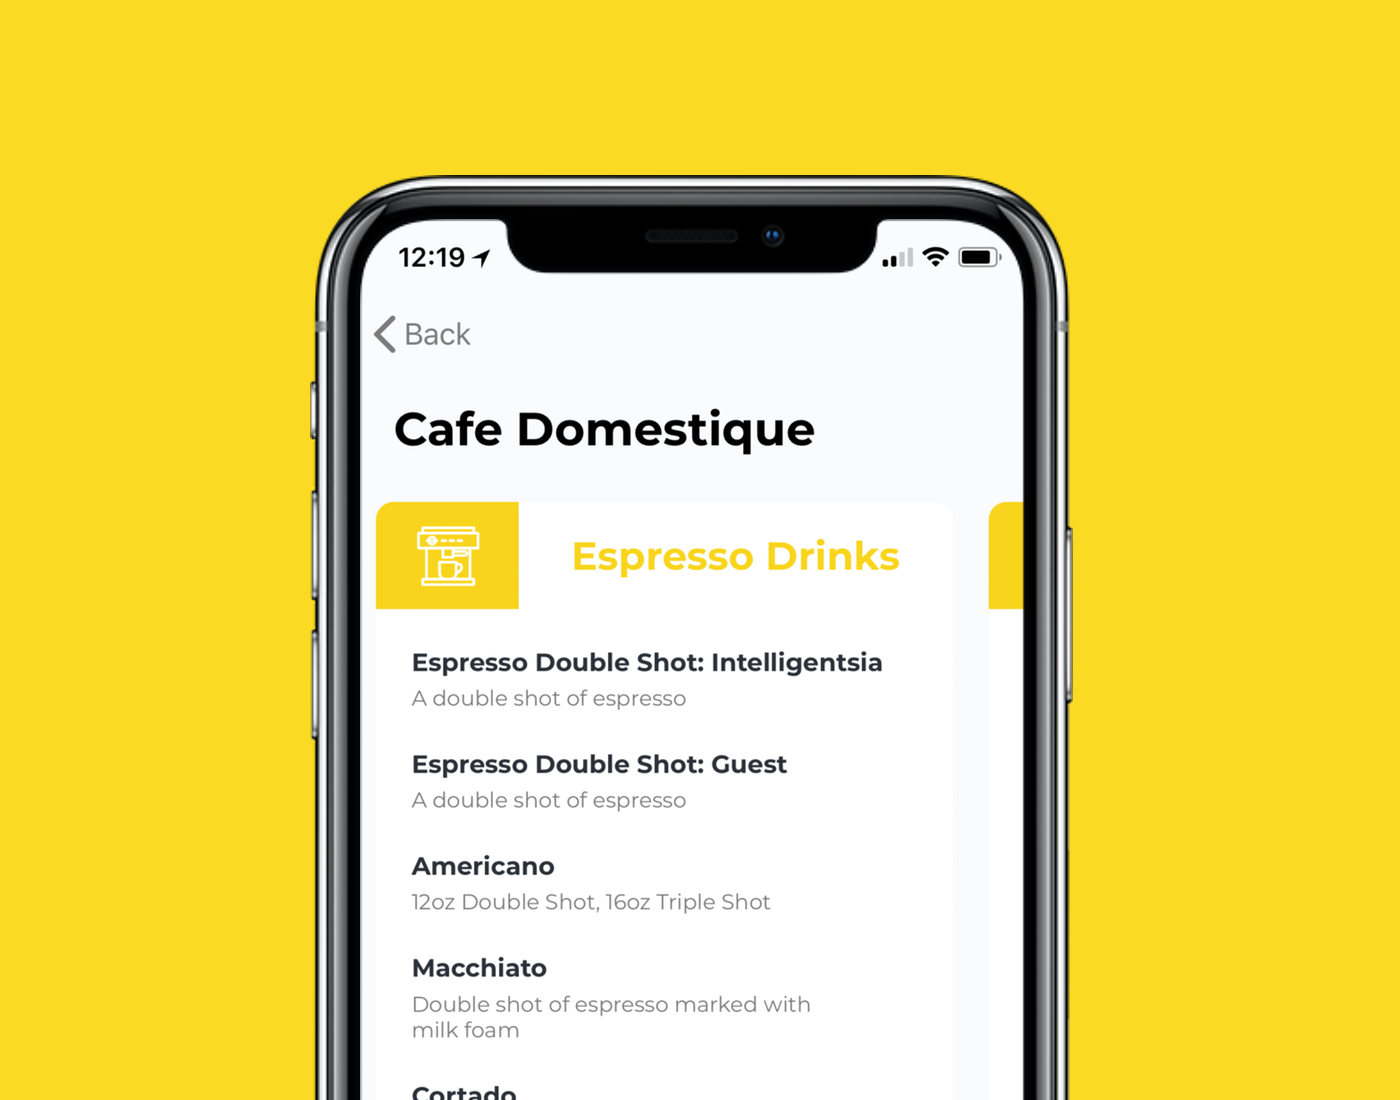 Fast, easy... - See their menu, then customize your drink. Add flavors, swap out the type of milk, pour it over ice... your favorite shop can give you as many options as they want, so you can get your drink just the way you like it.